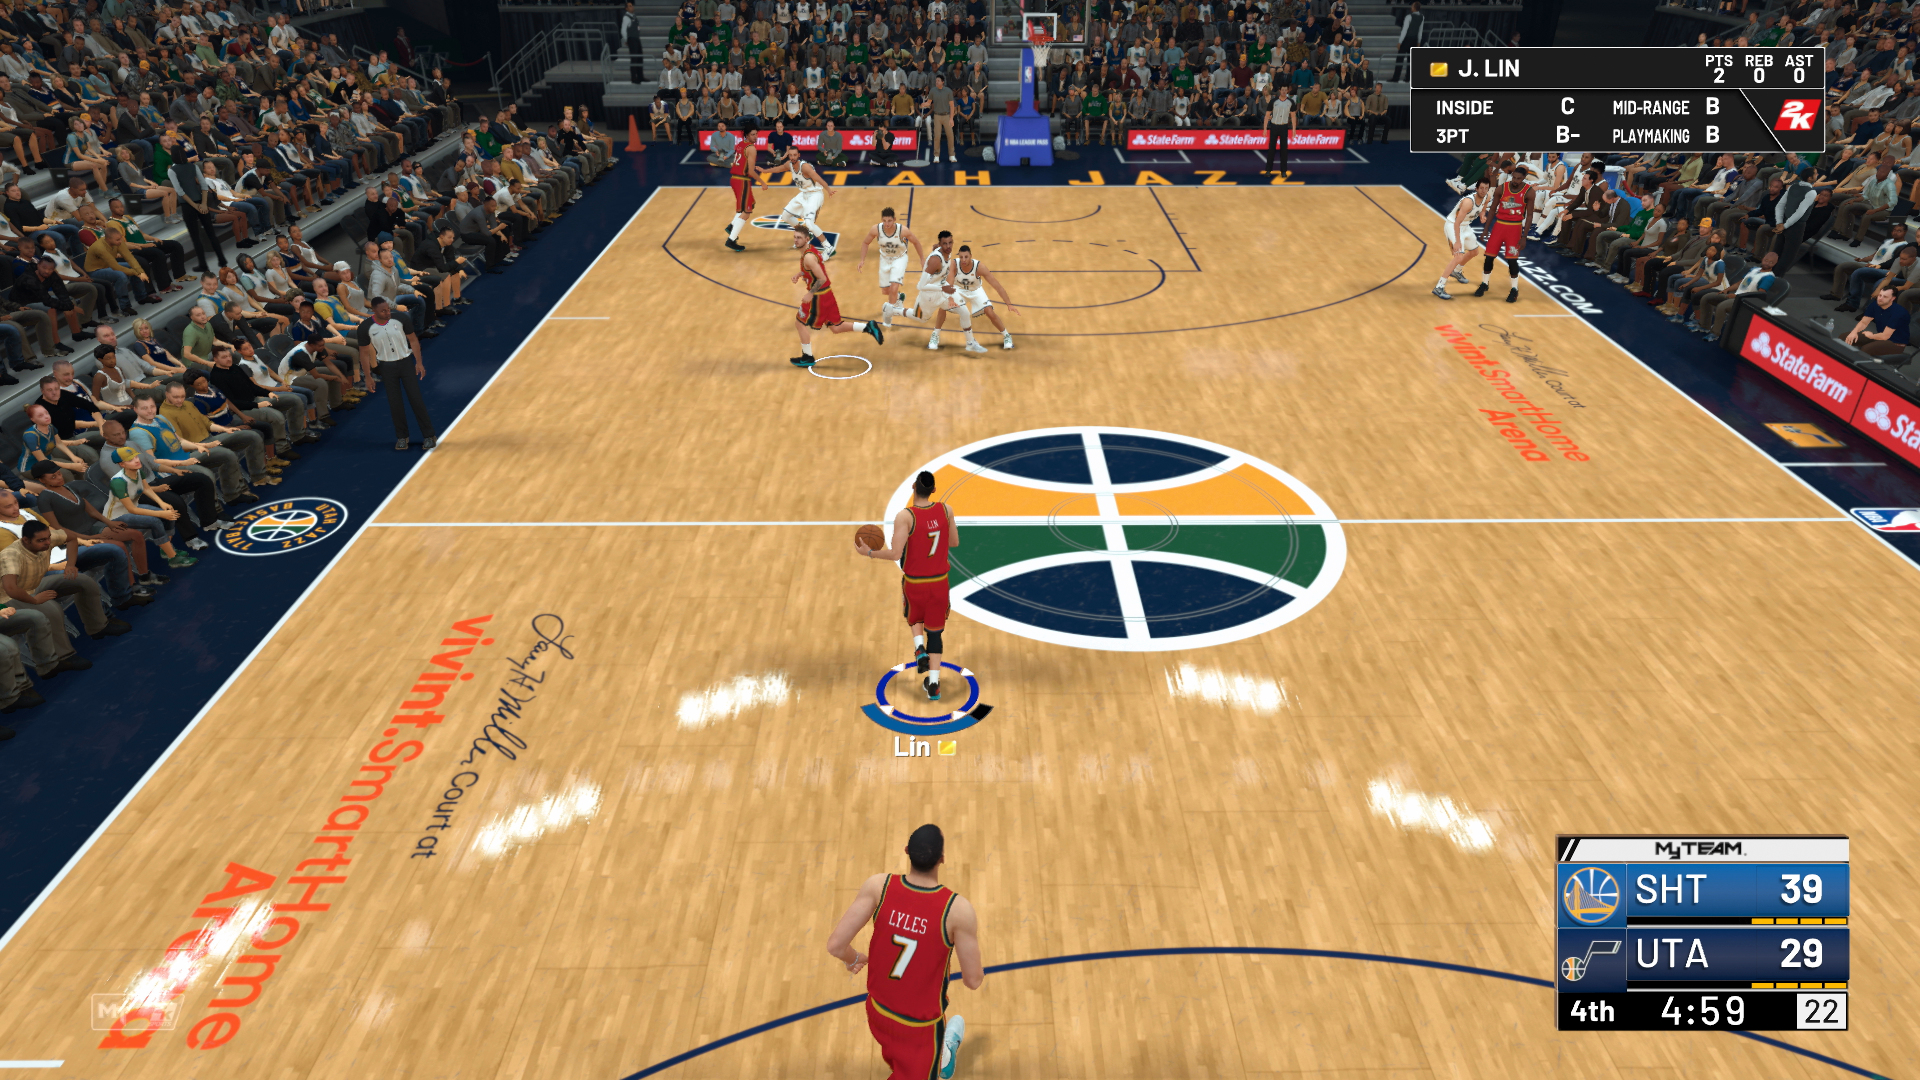 NBA 2K19 MyTeam Guide - Beginner Tips and Tricks | USgamer